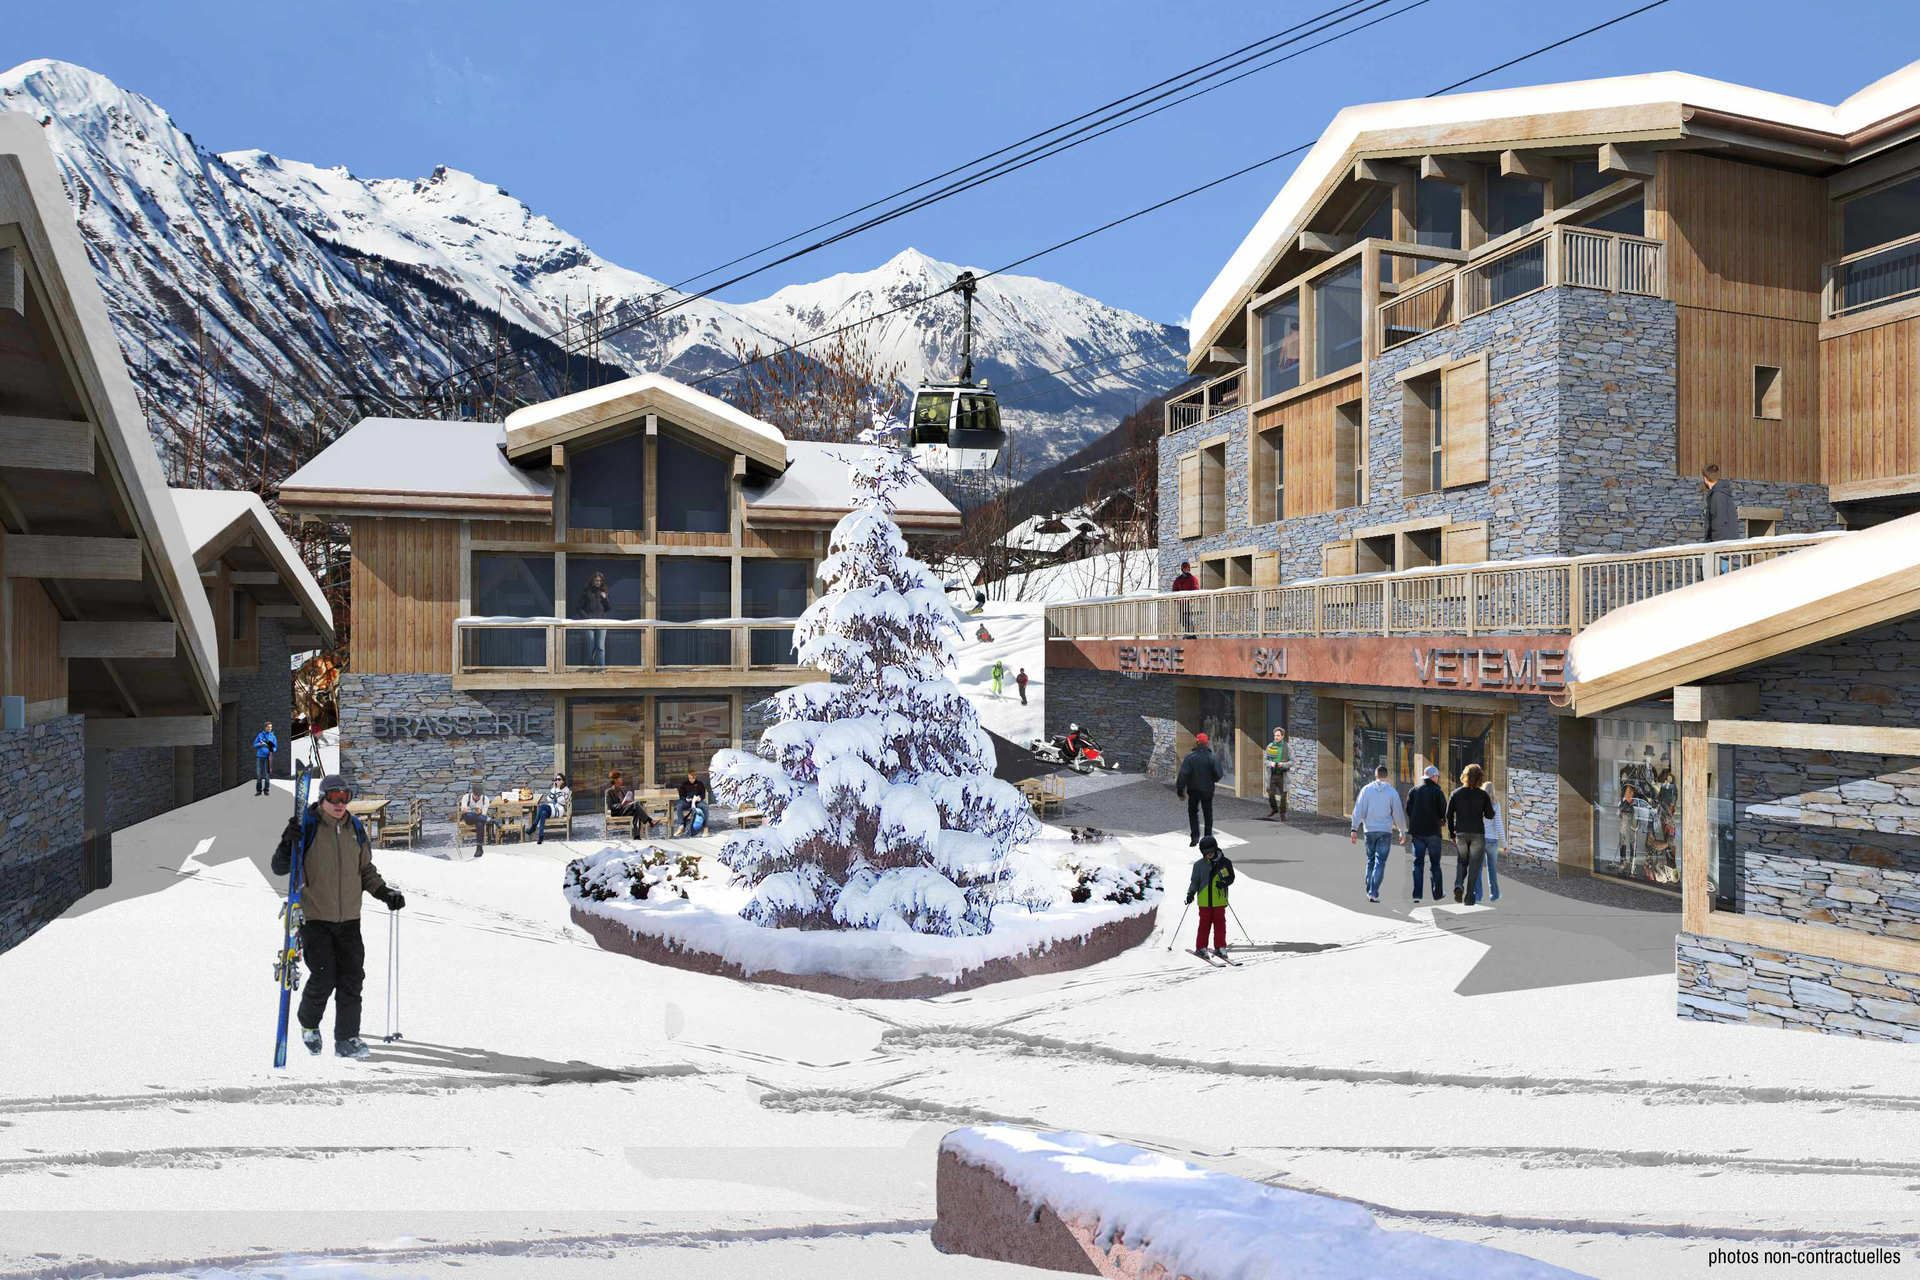 4 Room 6 Pers ski-in ski-out / CASEBLANCHE C21